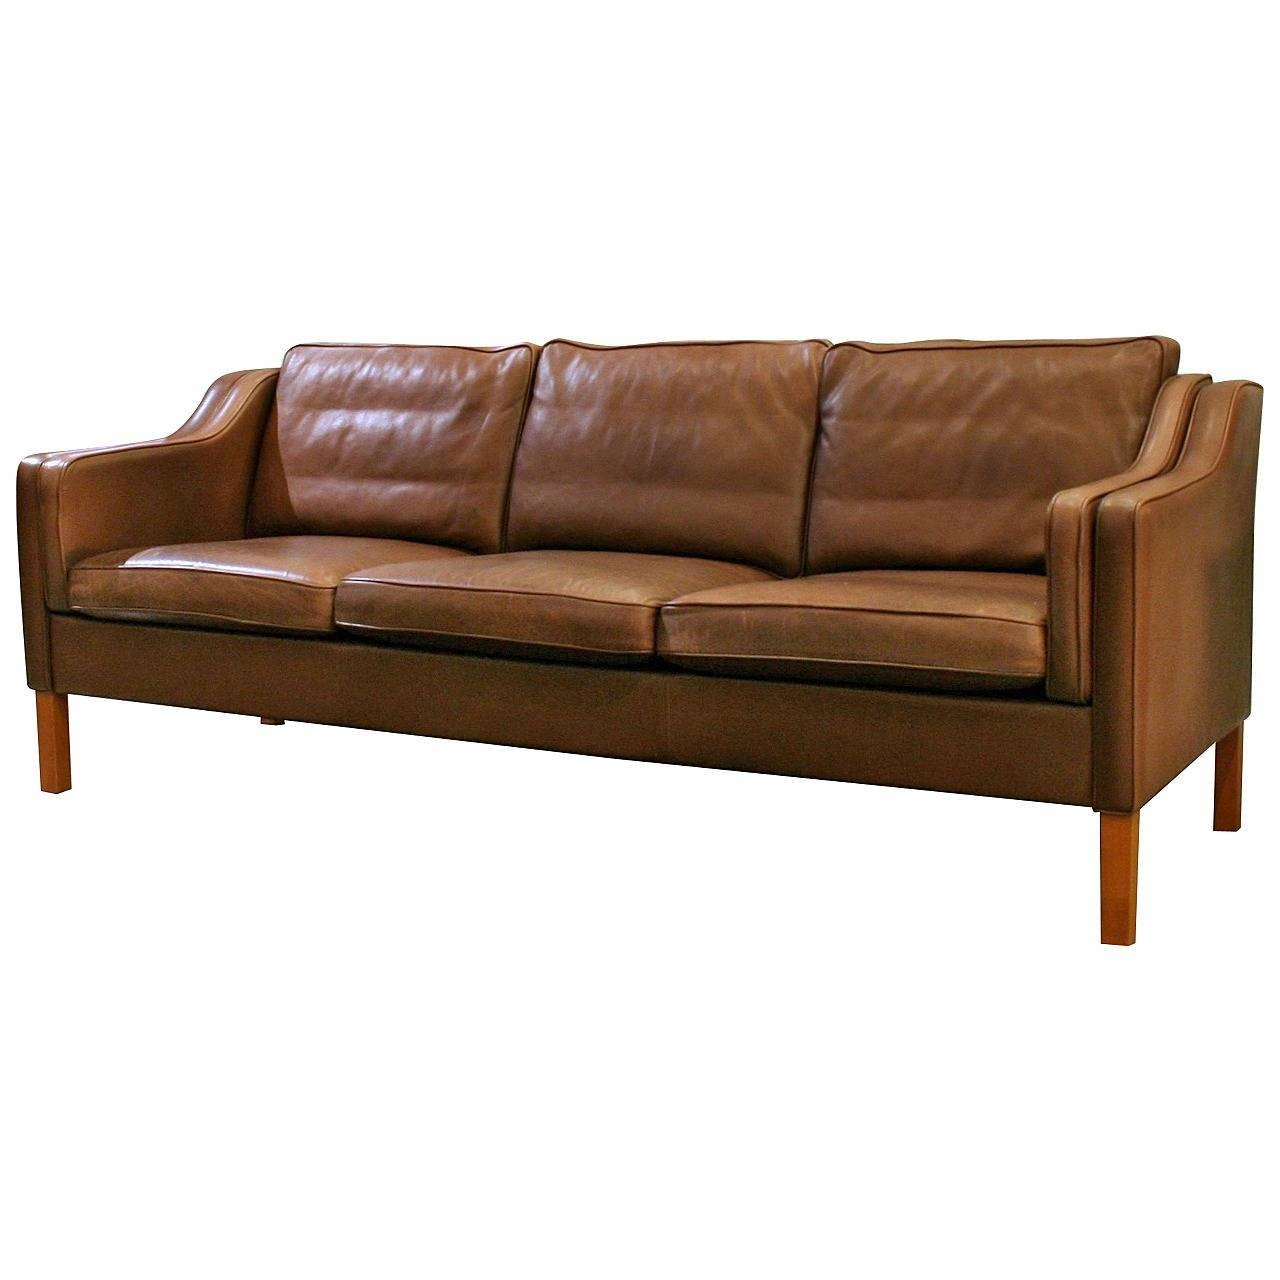 Vintage Danish Leather Sofa At 1Stdibs inside Danish Leather Sofas (Image 15 of 15)